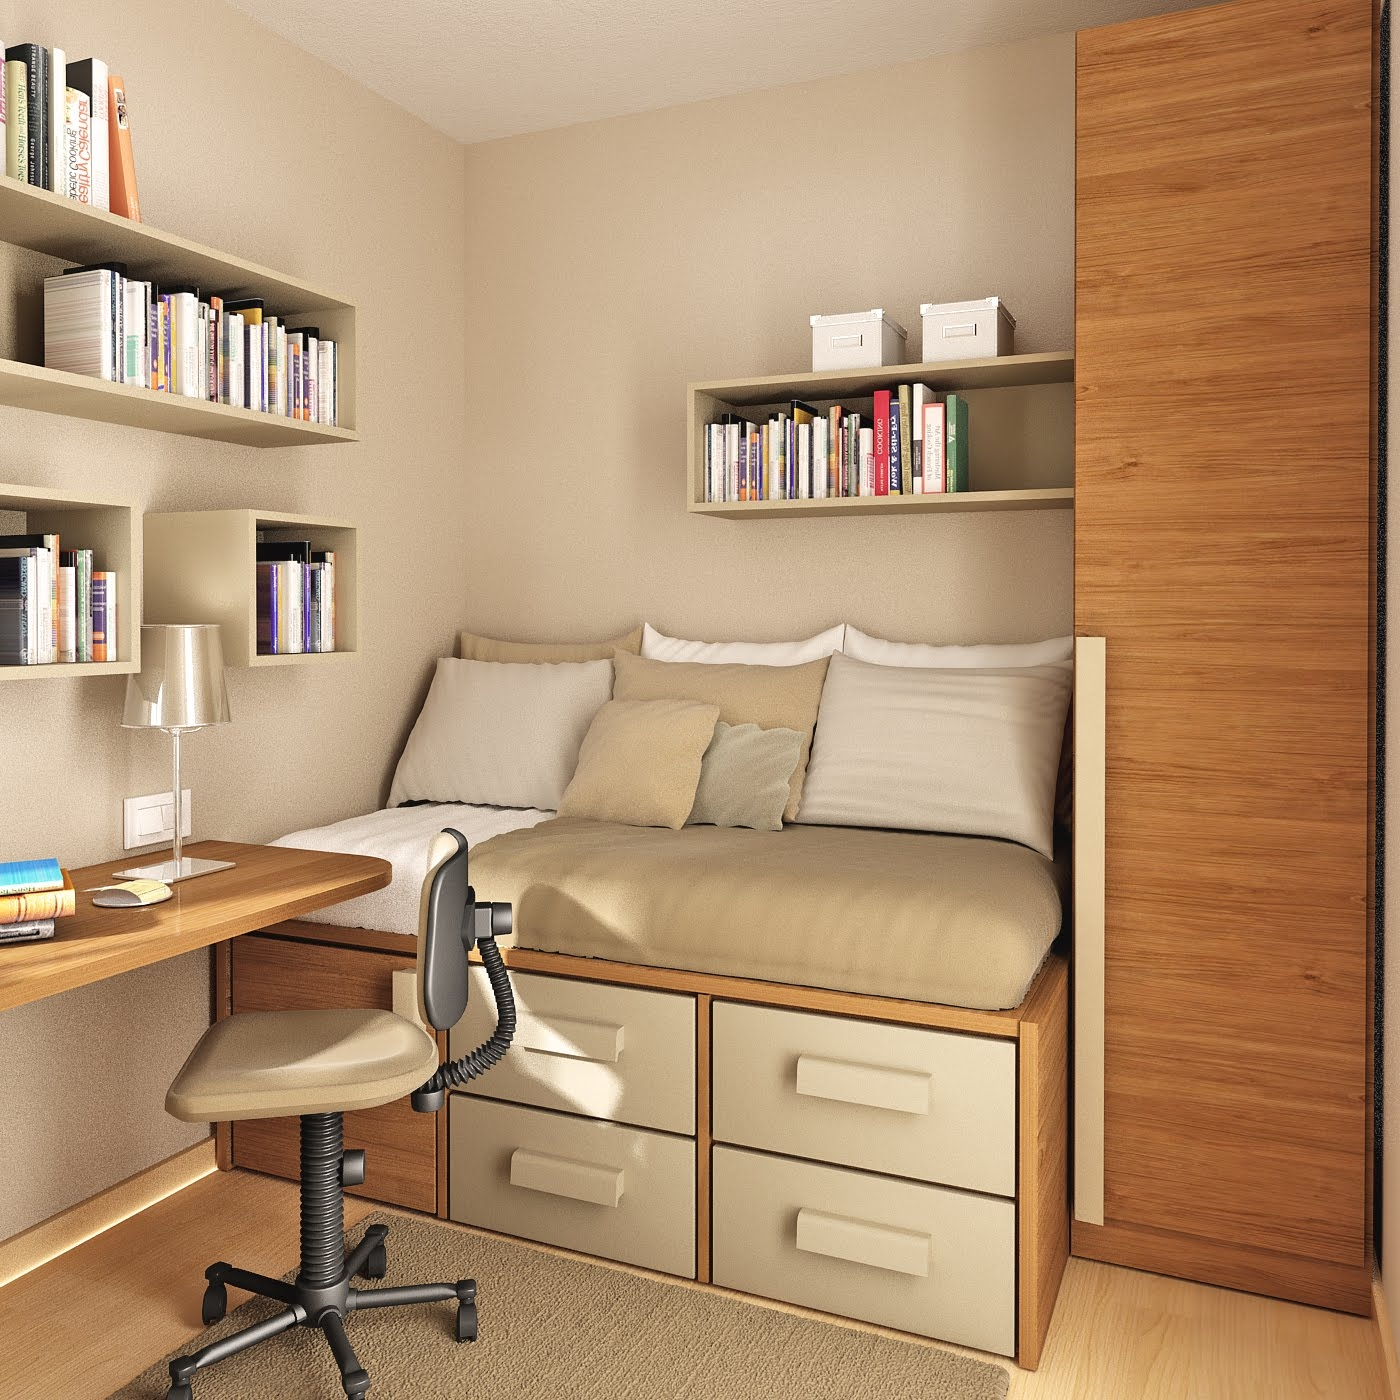 Others Awesome Study Room Design Ideas For Your Inspirations With Study Room Cupboard Design (View 11 of 15)